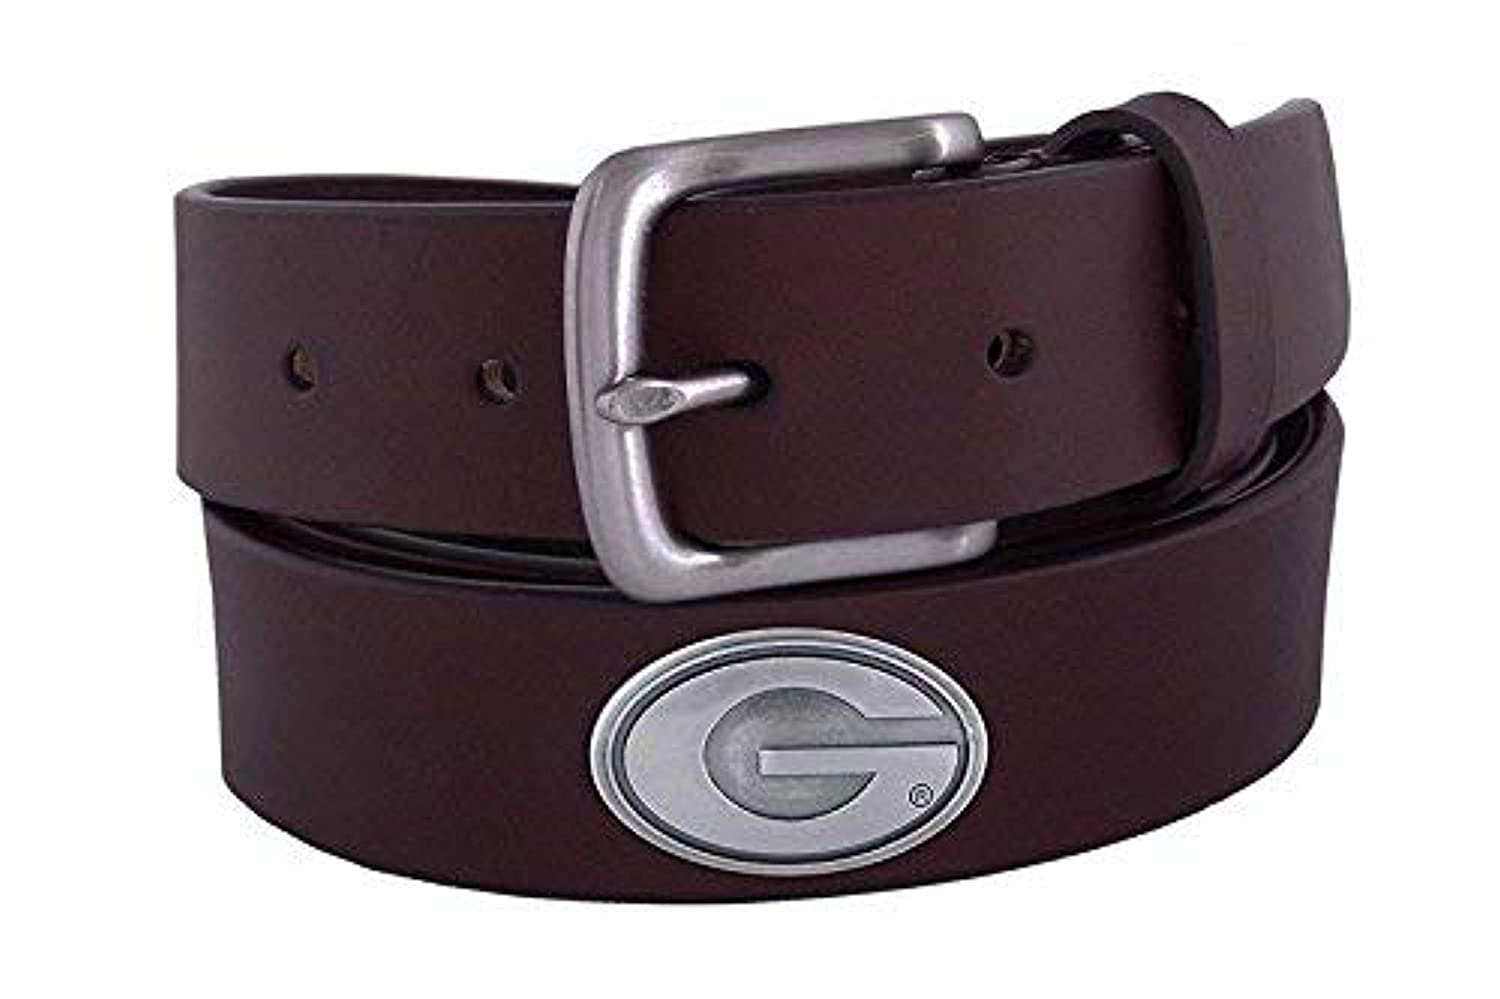 ZeppelinProducts UGA-BOLP-BRW-46 Georgia Concho Brown Leather Belt 46 Waist